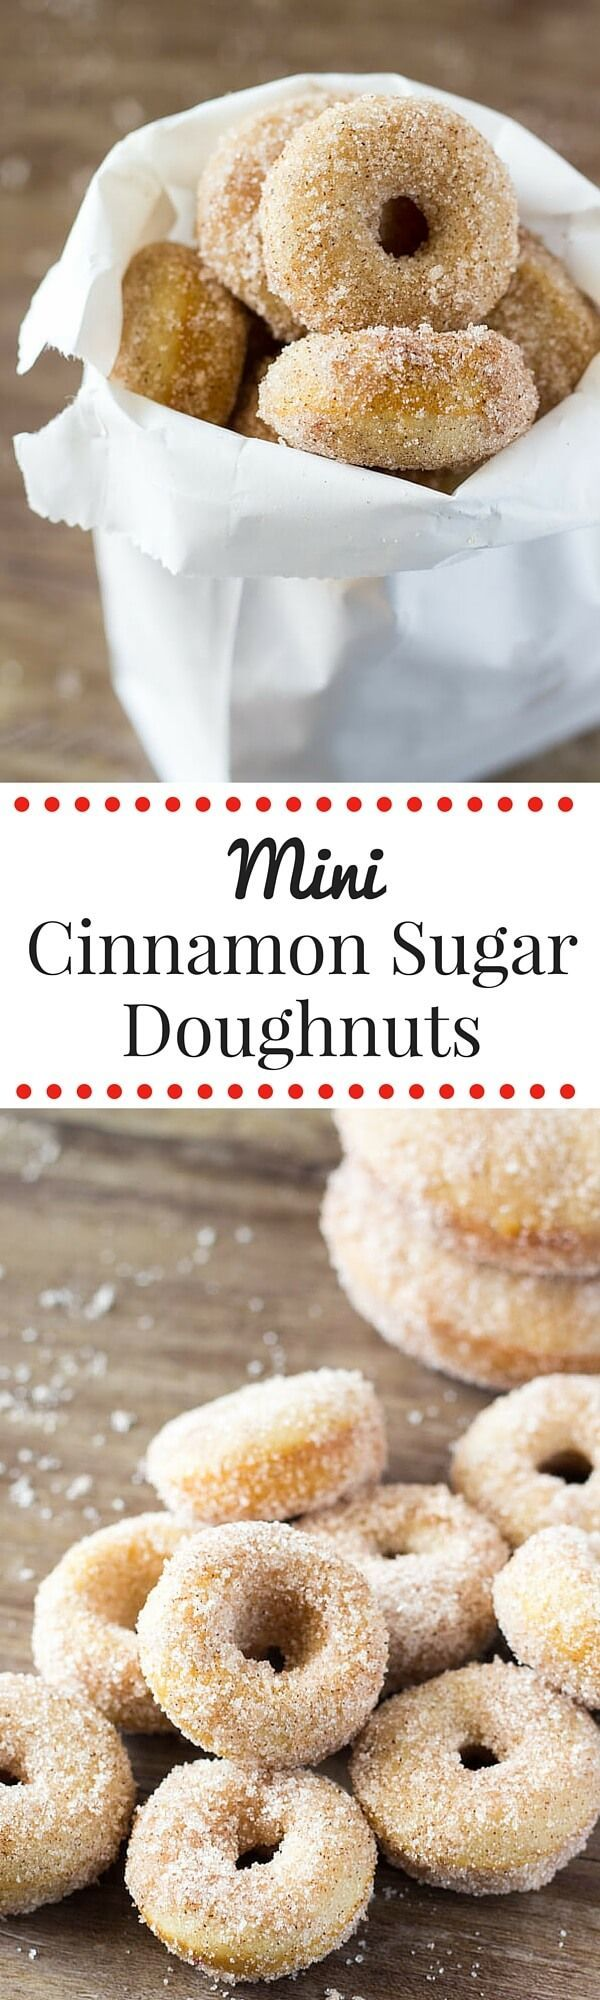 Mini Cinnamon Sugar Doughnuts just like the fair! With golden edges, a delicious coating of cinnamon sugar, and baked instead of fried - these are the PERFECT copycat recipe!